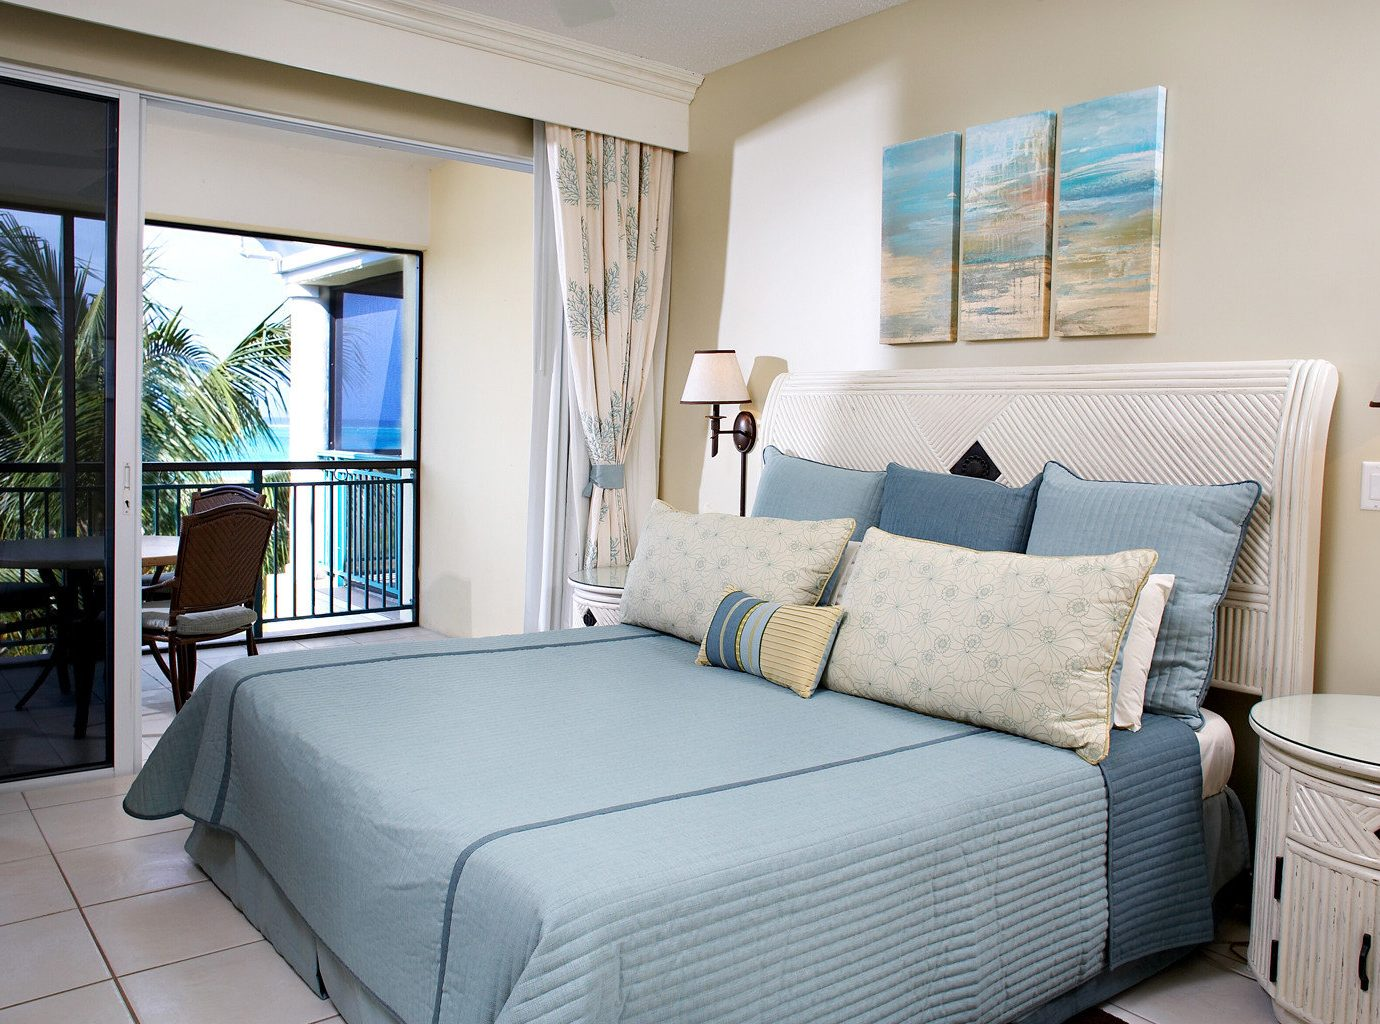 Balcony Bedroom Family Island Resort Scenic views Tropical property condominium living room Suite home cottage